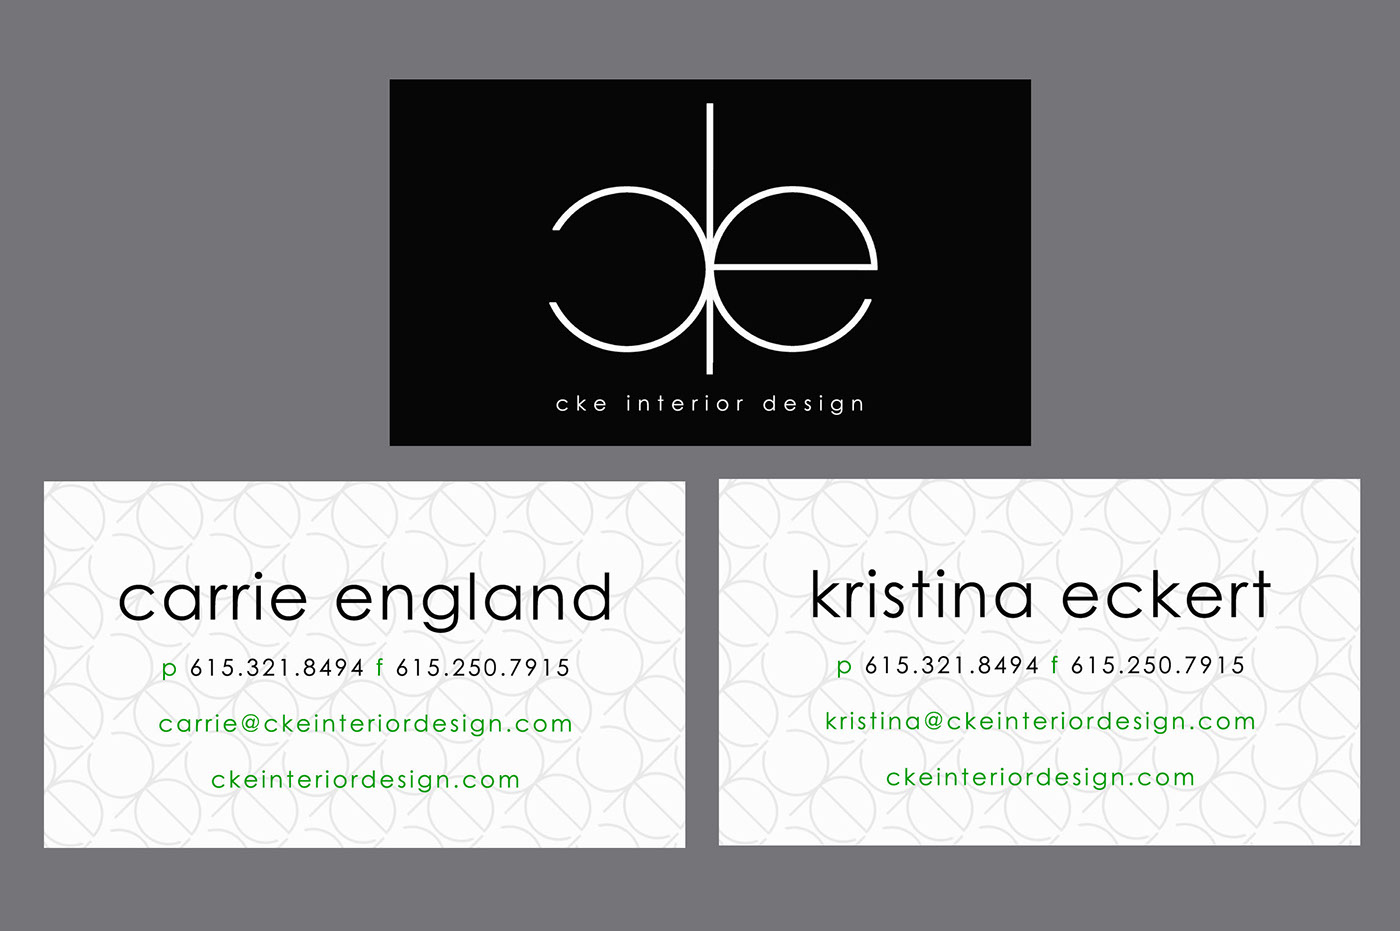 Cke interior design business cards on behance for Interior designers business cards